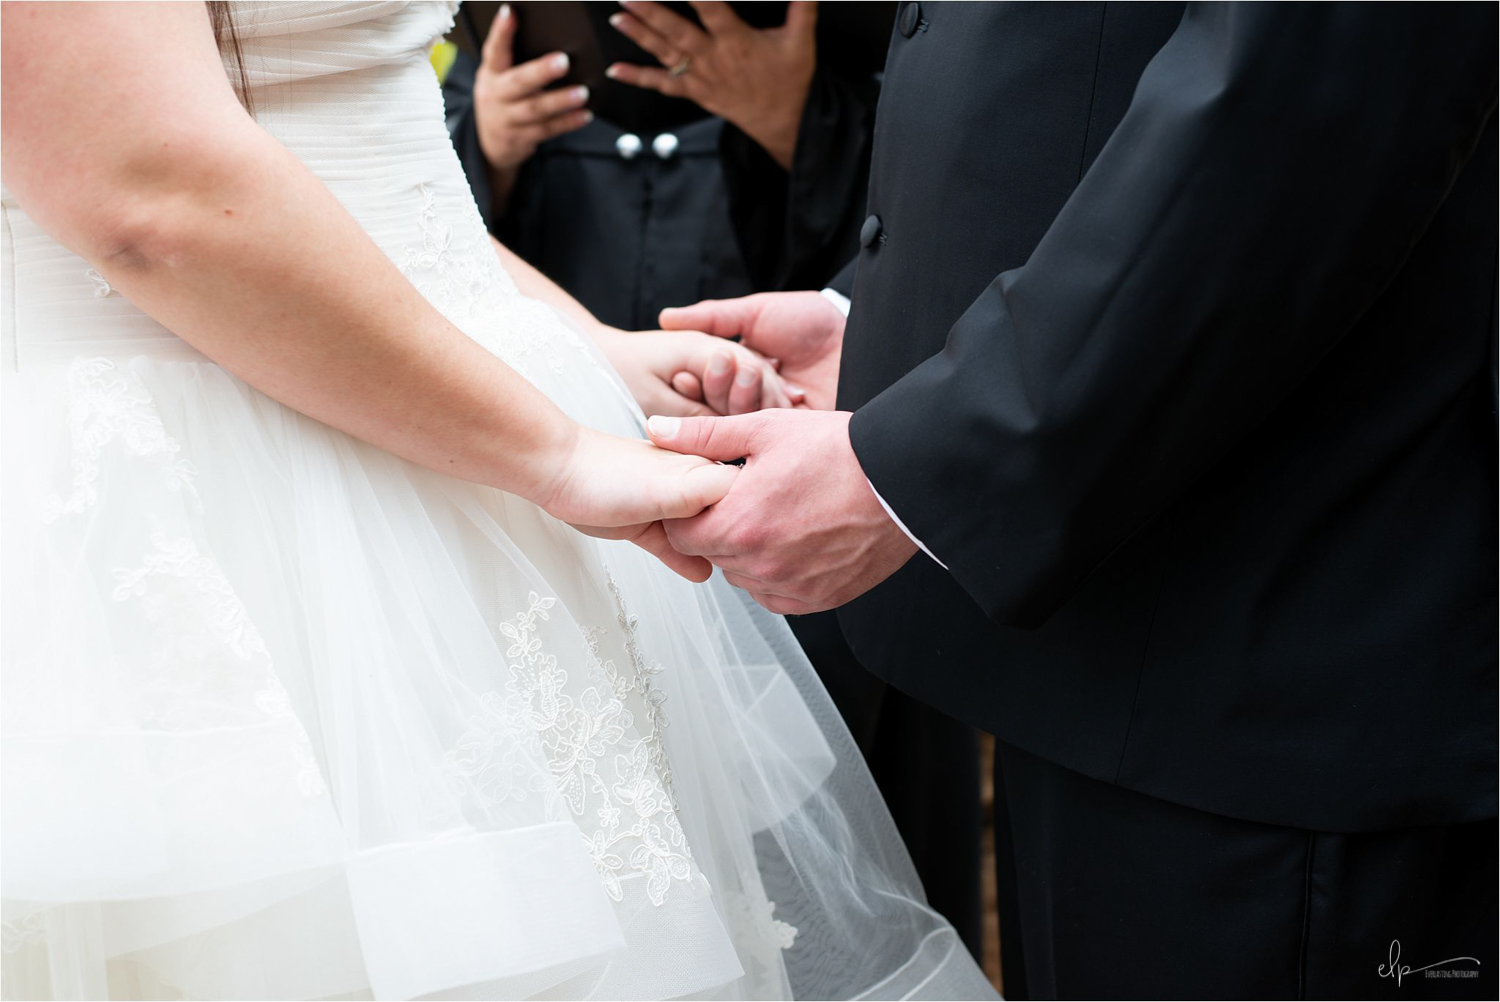 Couple holding hands.